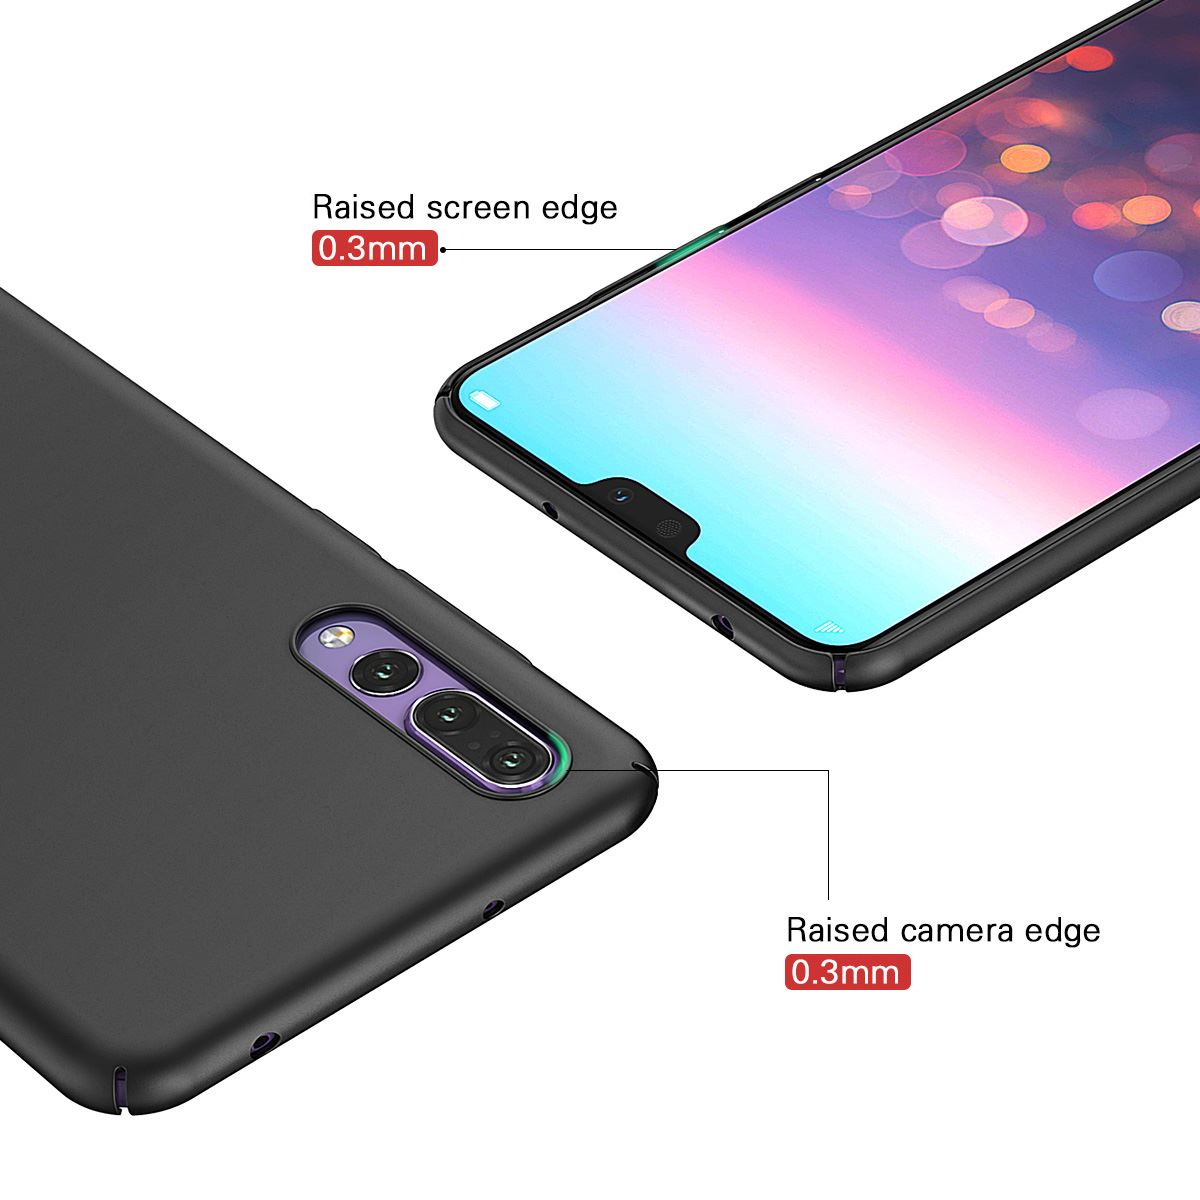 Luxury-Protective-Slim-Thin-Hard-Back-Case-Cover-For-Huawei-P20-Pro-P10-P-Smart thumbnail 15